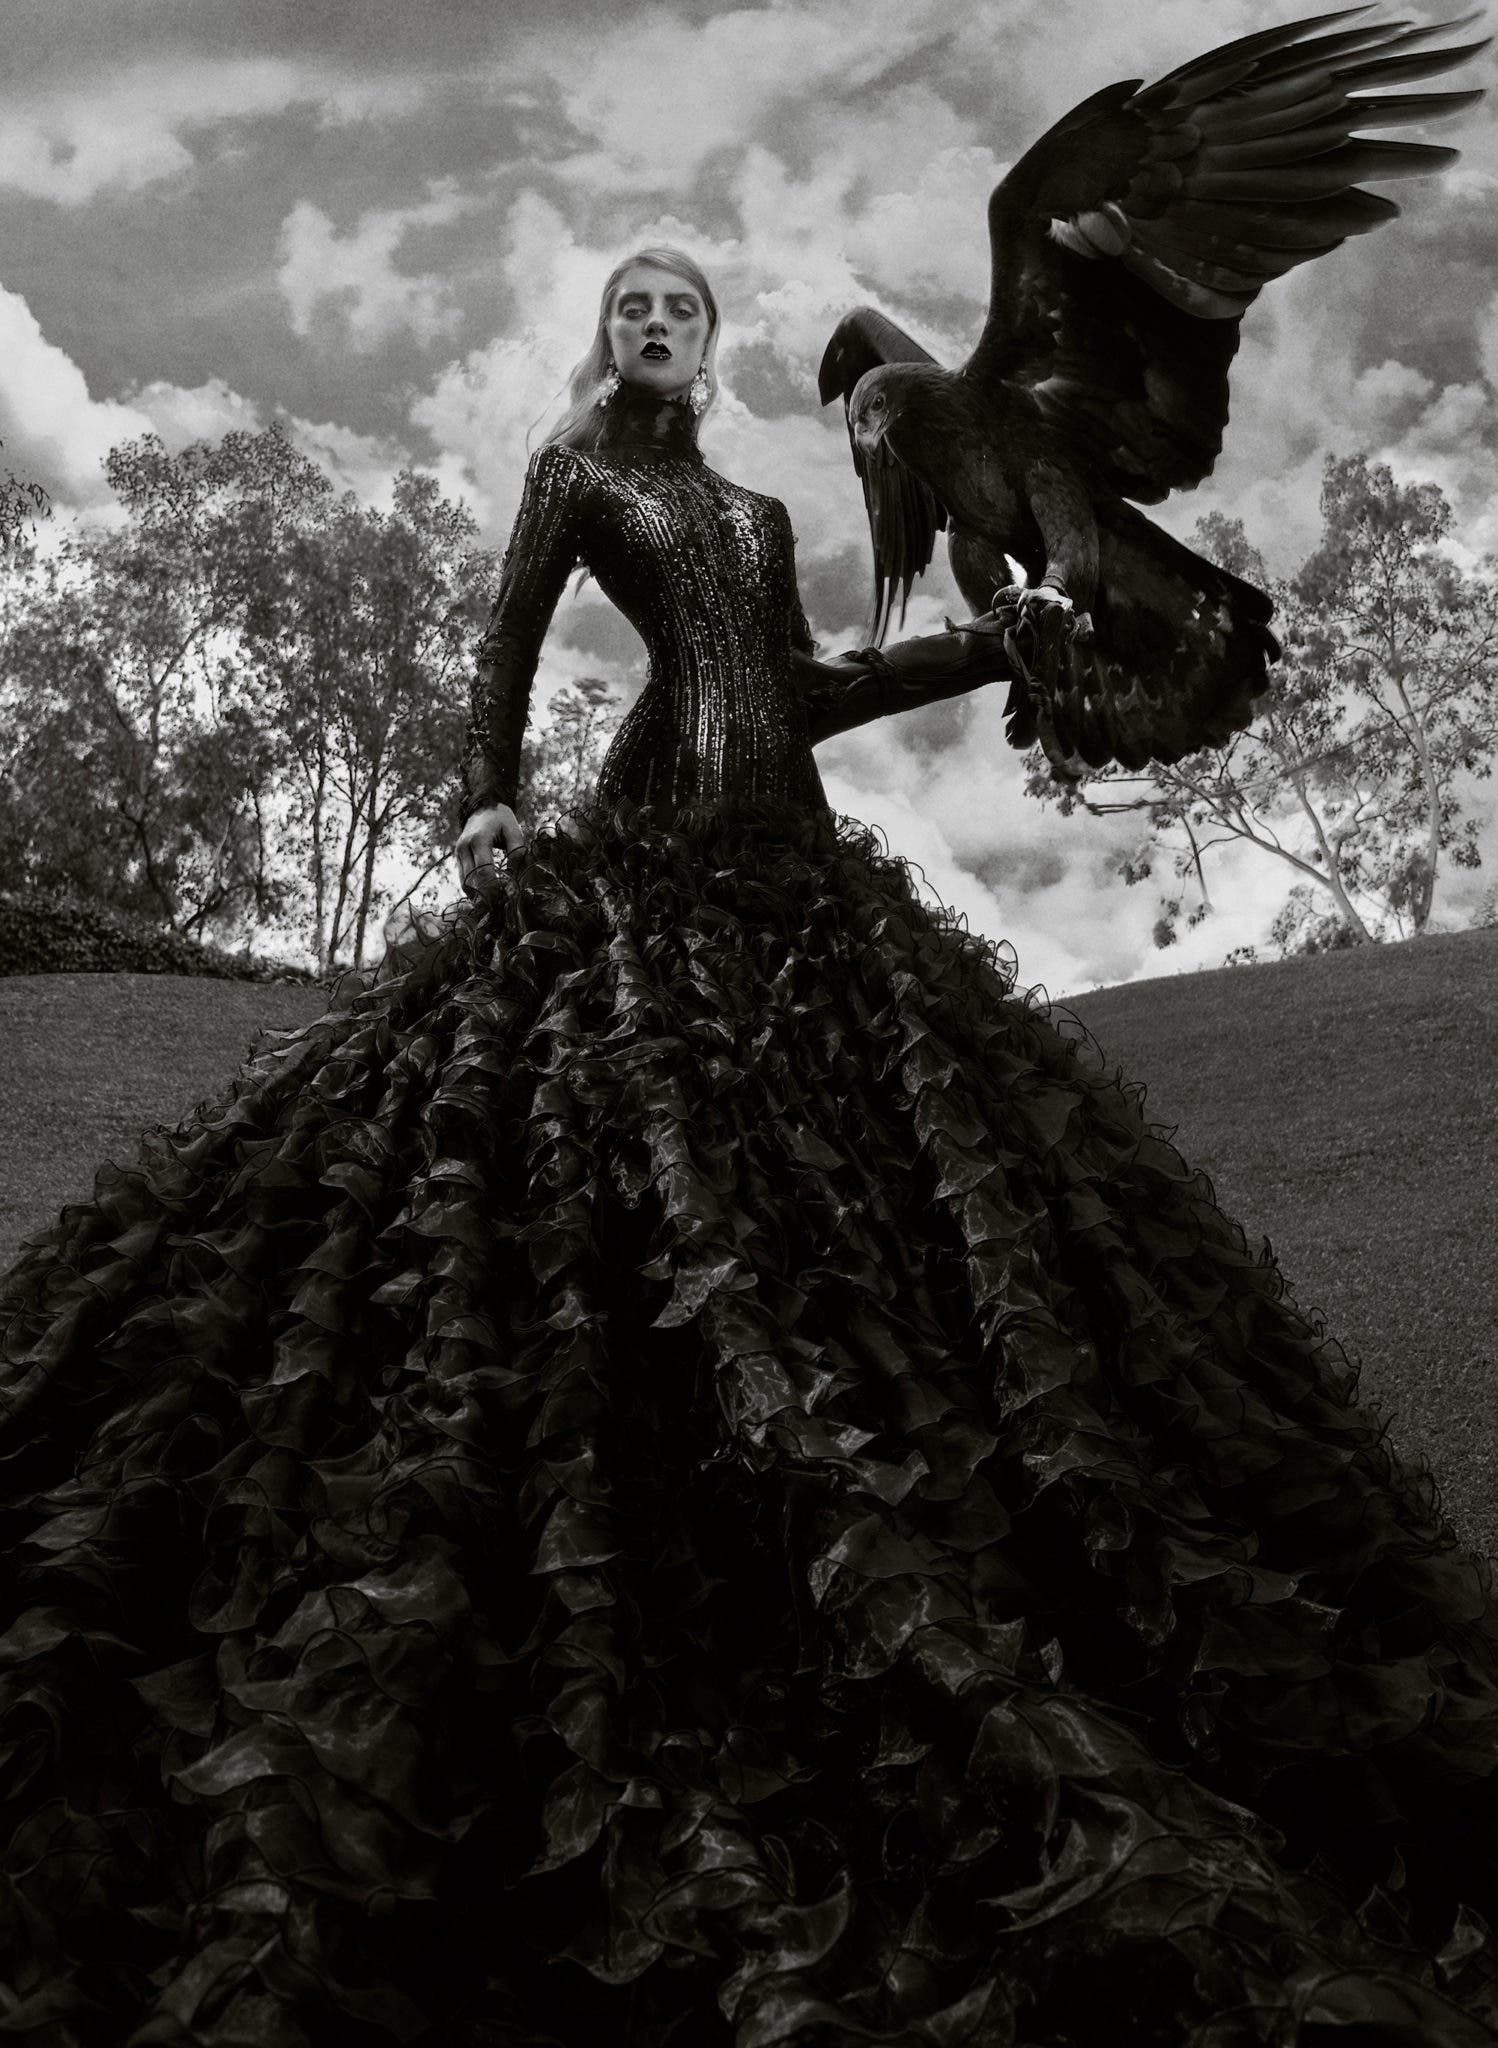 Jvdas Berra Showcases Birds of Prey in These Beautiful Fashion Photographs